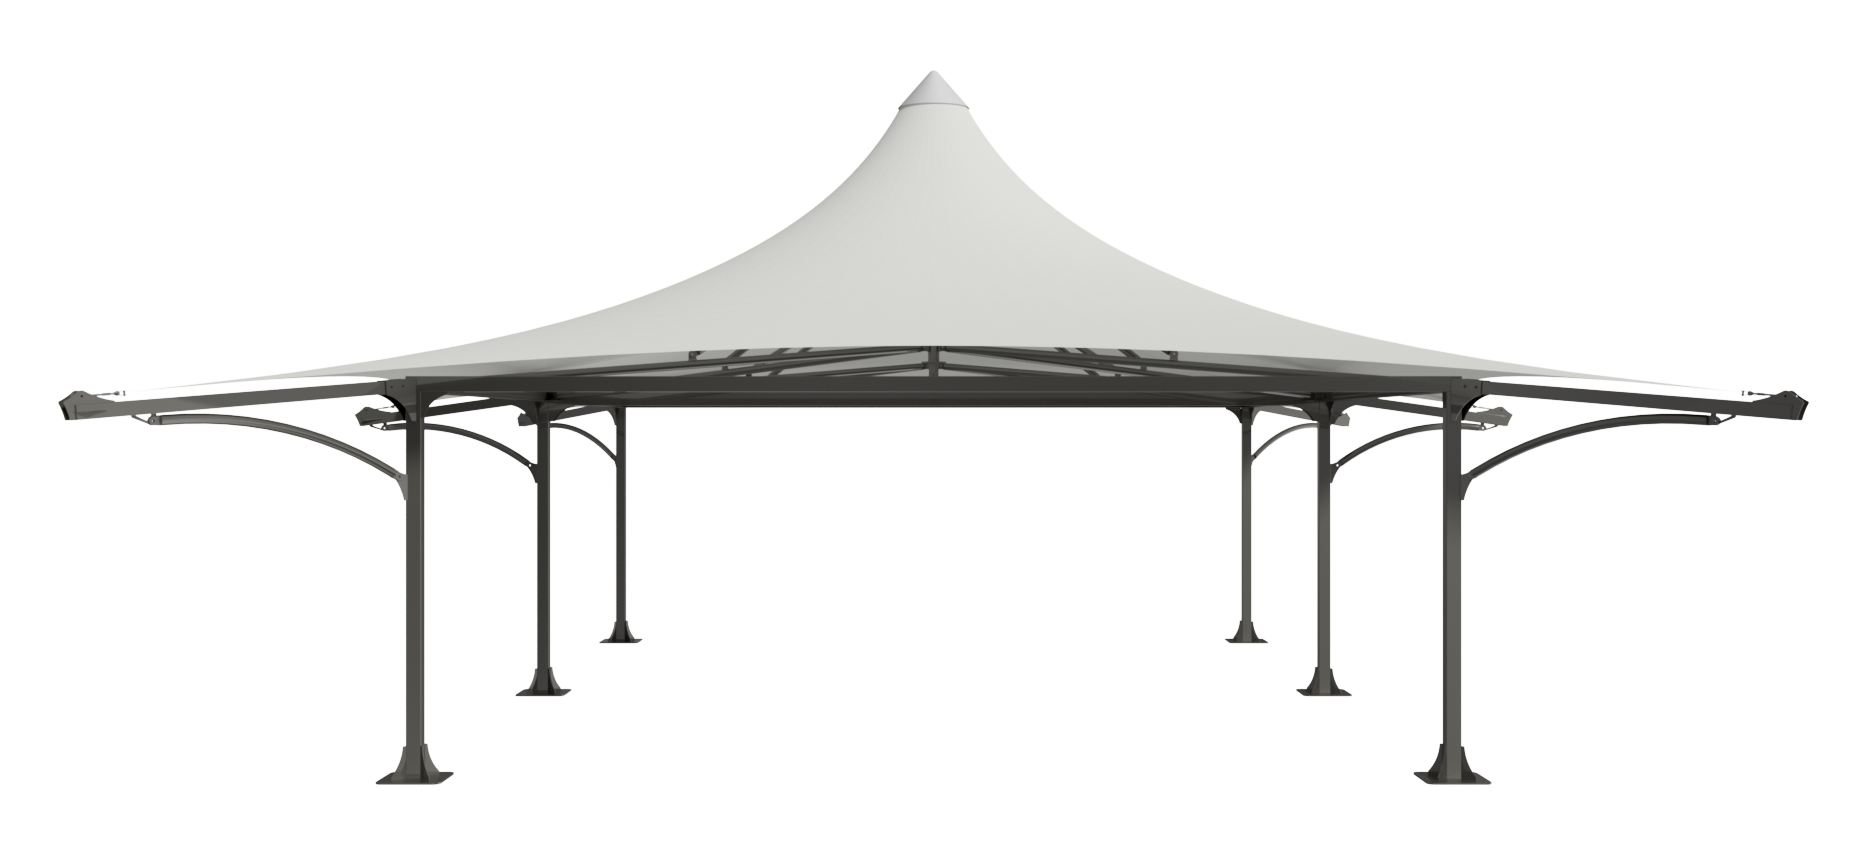 Dual Peak Bar Structure - Side